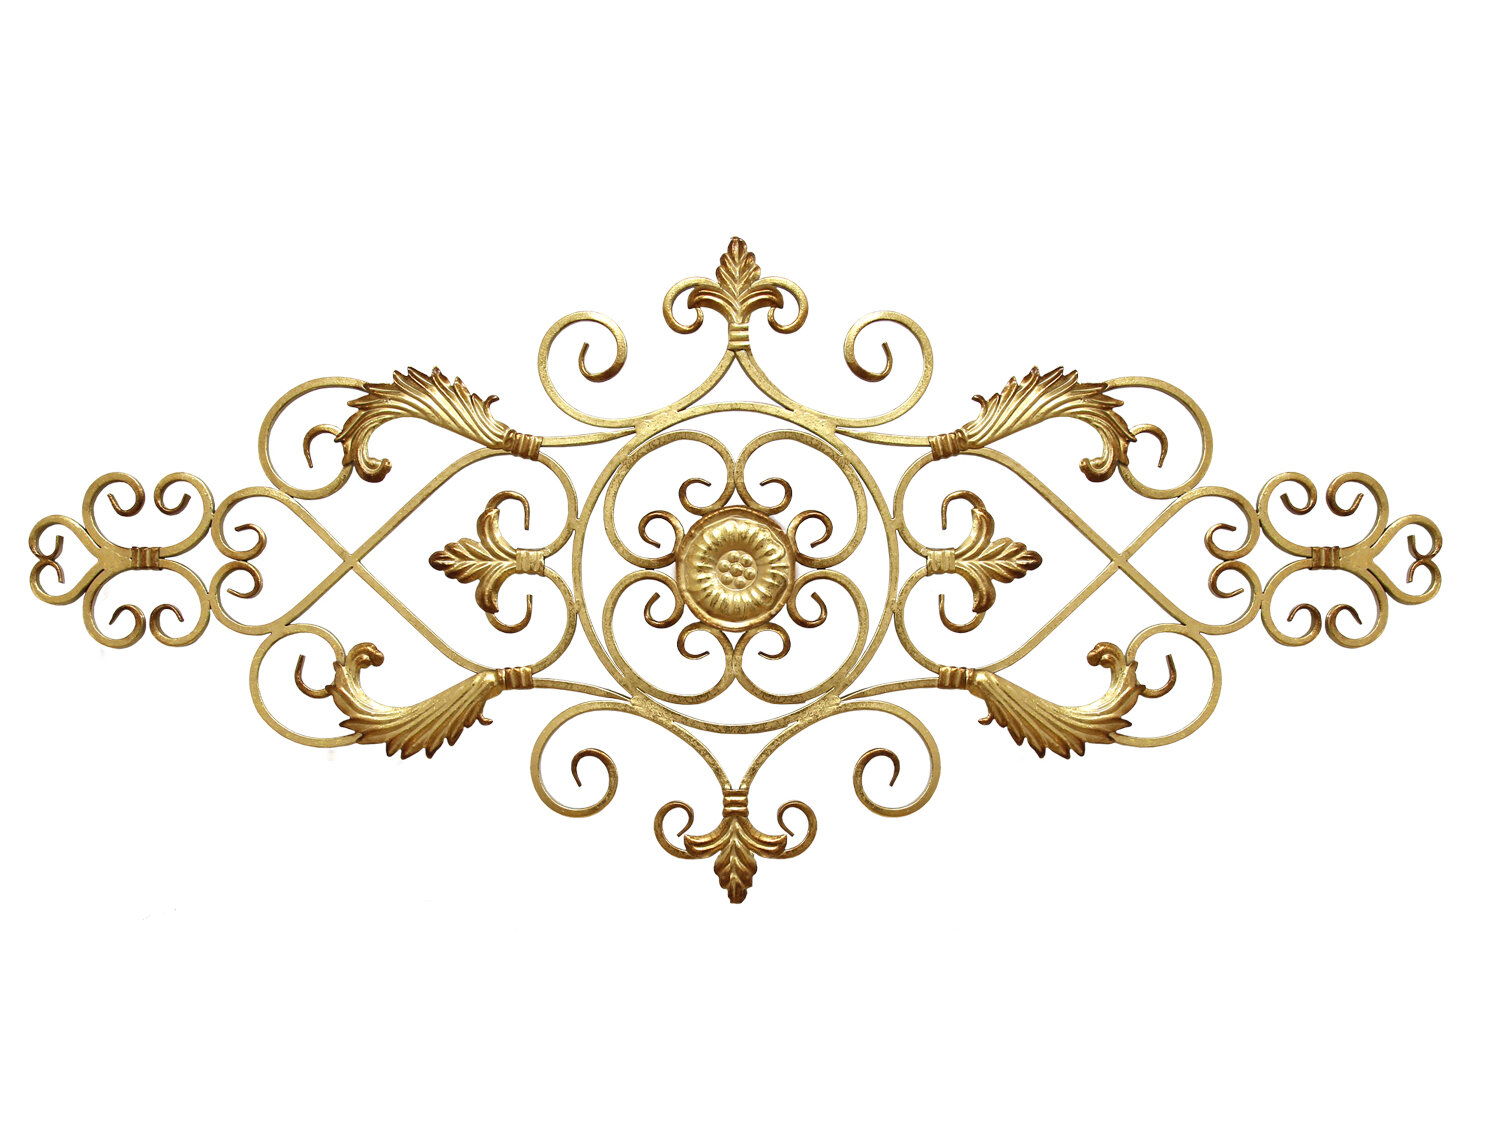 Metal Scroll Wall Art | Wayfair with regard to Belle Circular Scroll Wall Decor (Image 21 of 30)